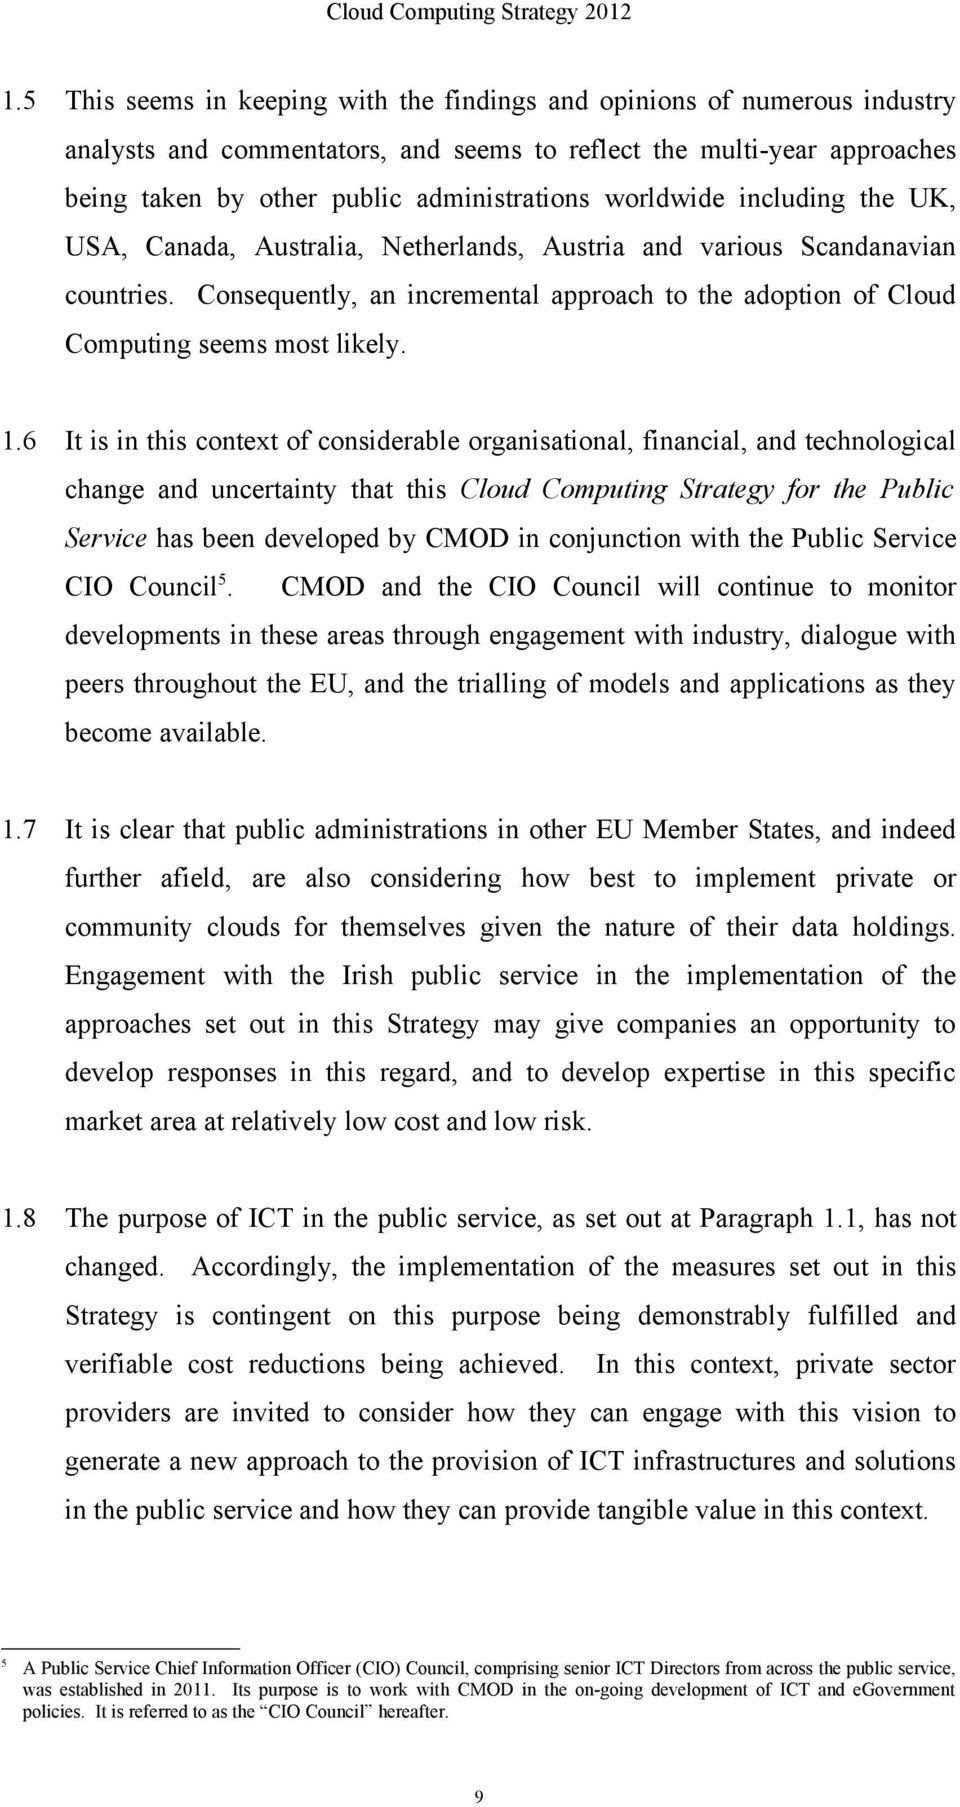 1.6 It is in this context of considerable organisational, financial, and technological change and uncertainty that this Cloud Computing Strategy for the Public Service has been developed by CMOD in